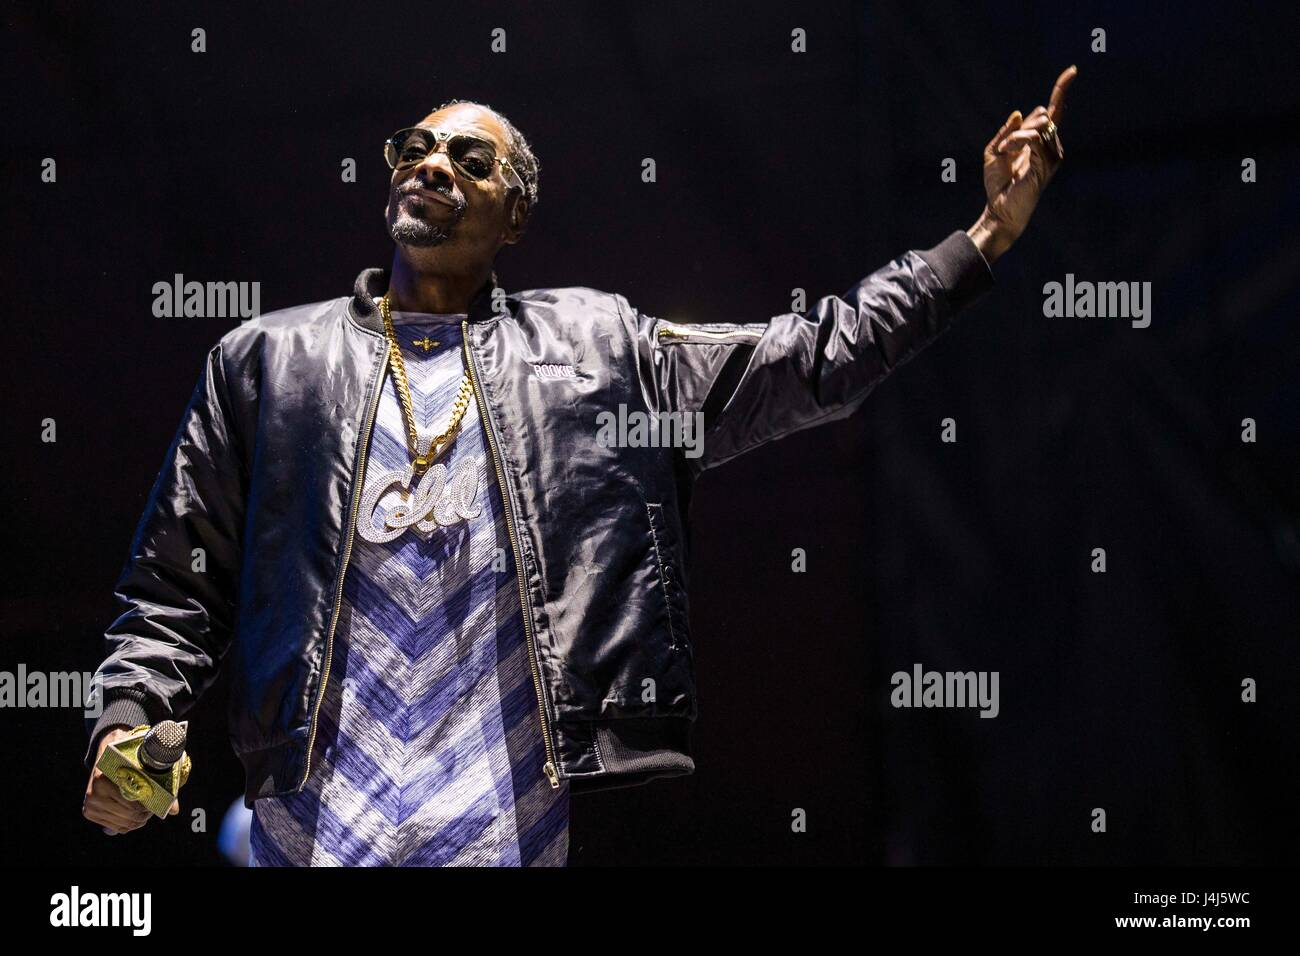 Snoop Dogg führt auf 2017 Beale Street Music Festival in Tom Lee Park in Memphis, Tennessee am 5. Mai 2017. Stockbild